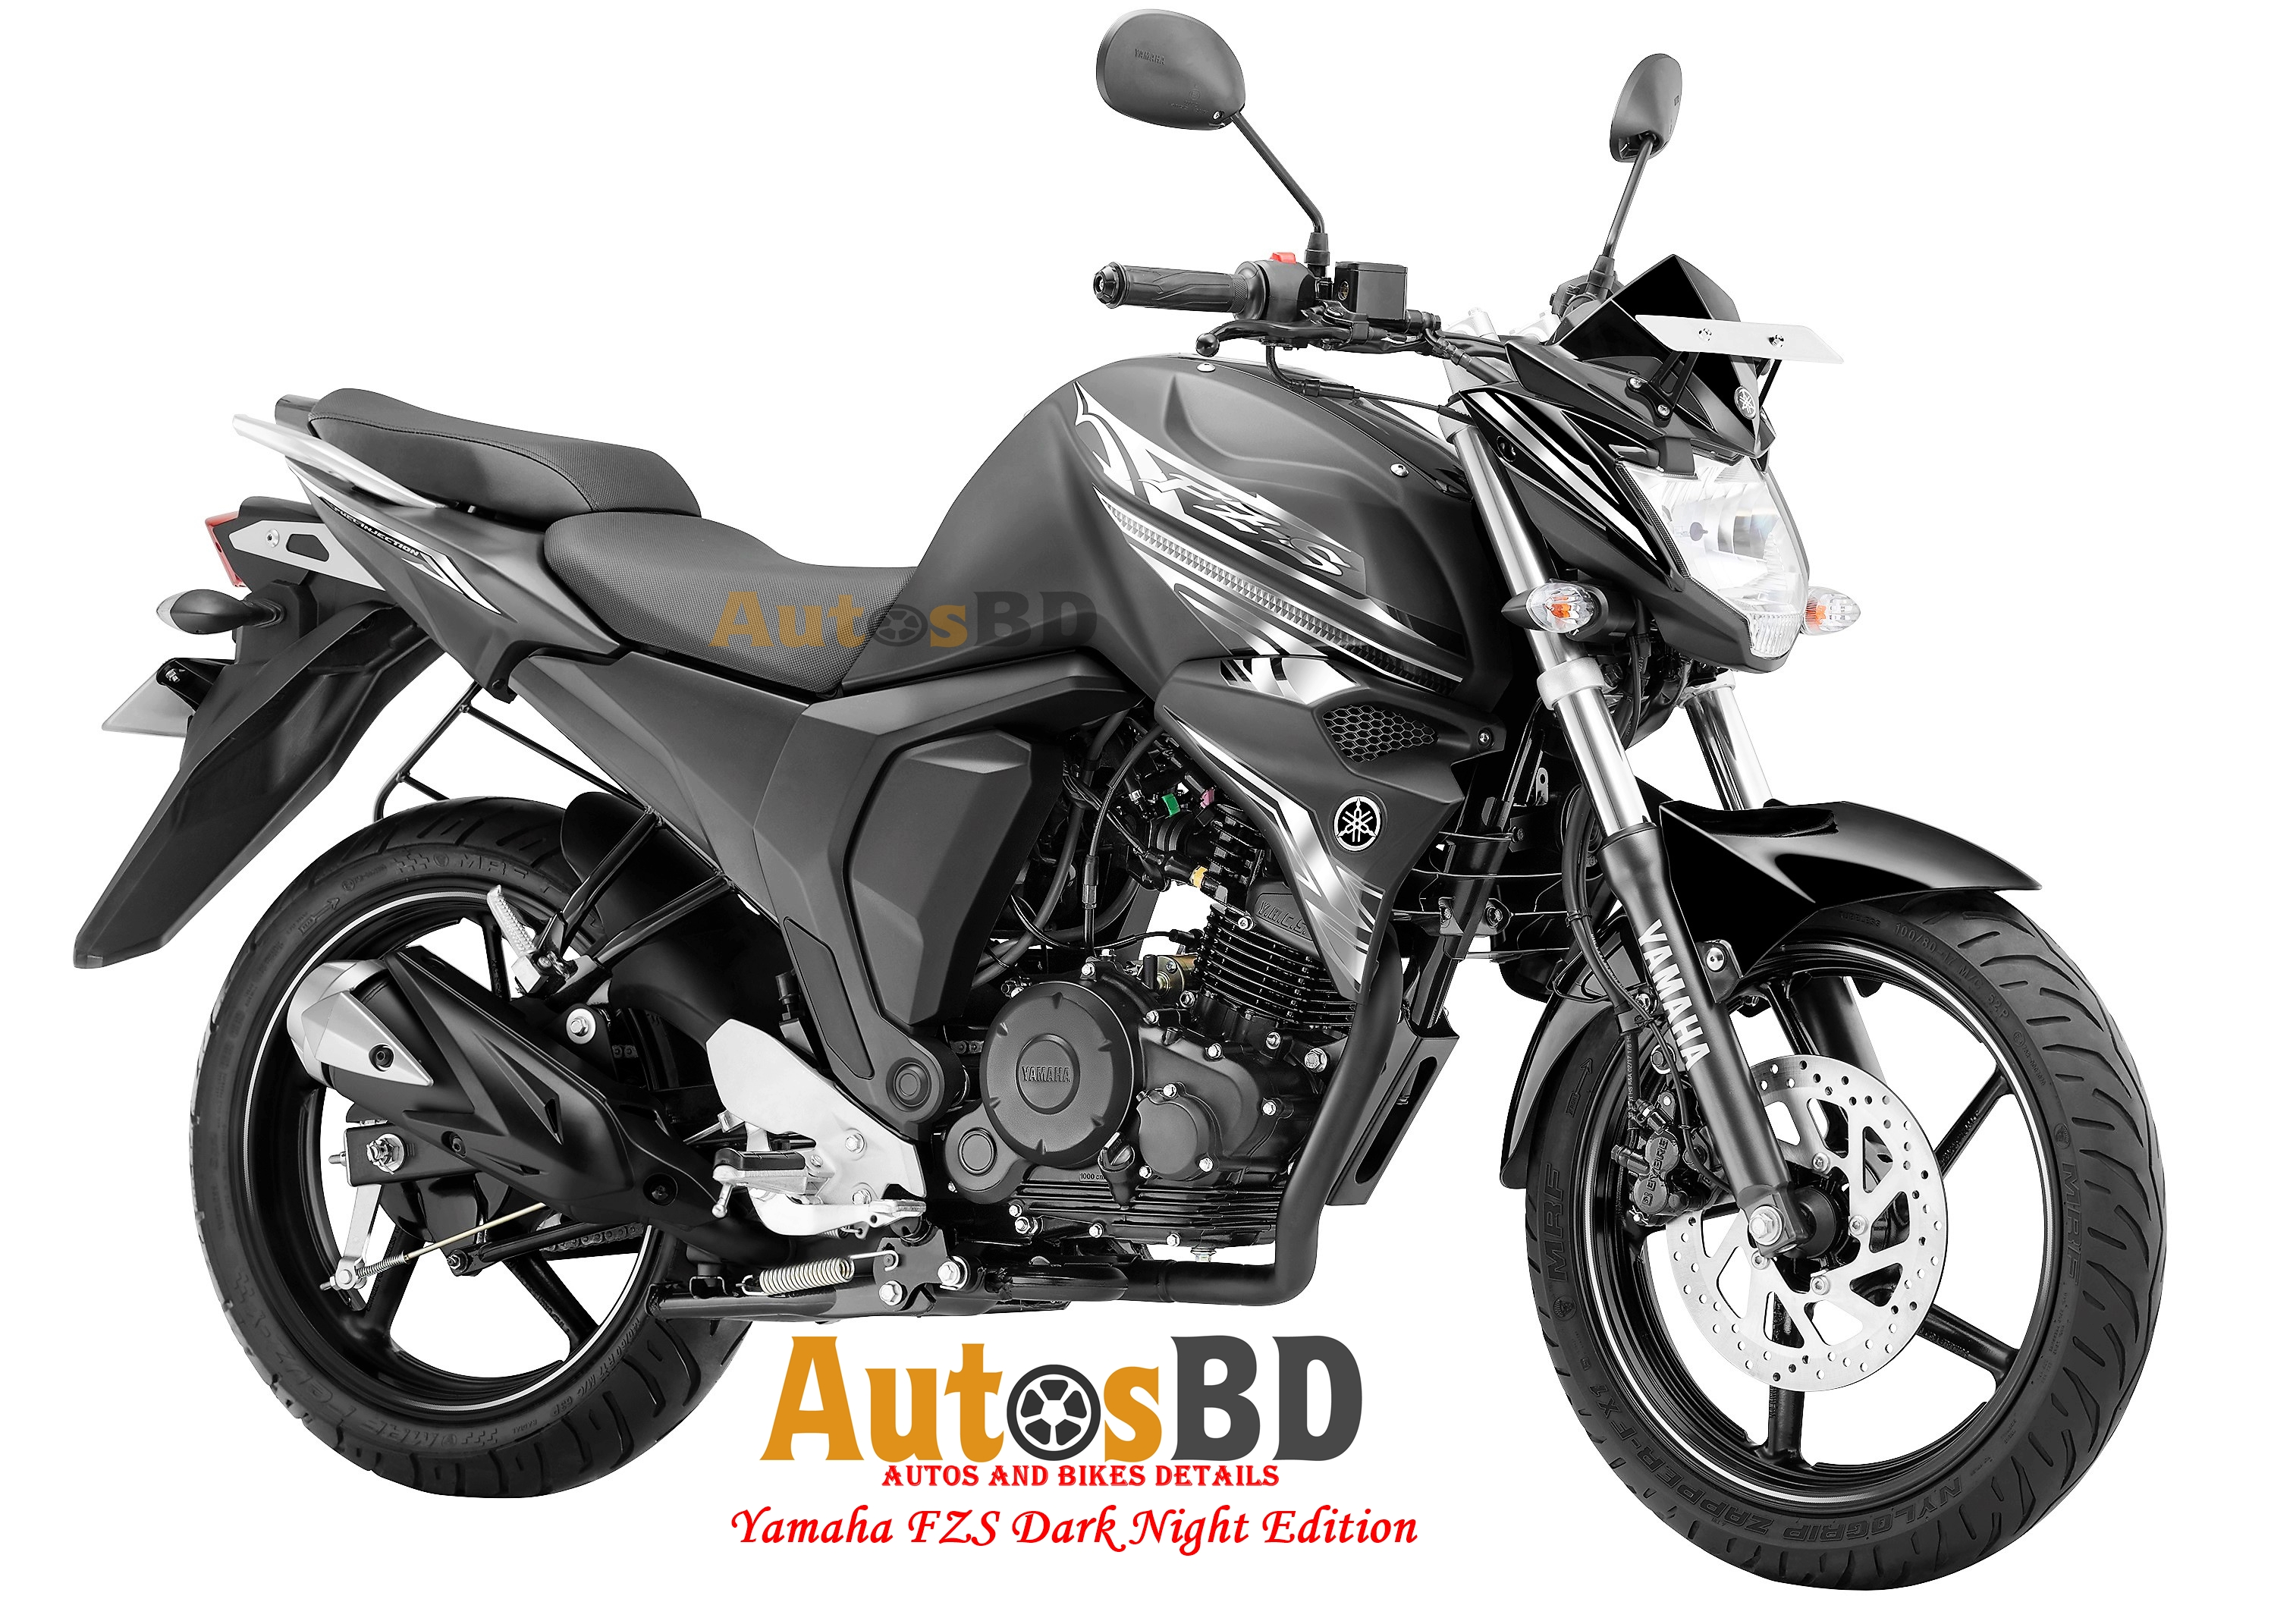 Yamaha FZS Dark Night Edition Motorcycle Price in India